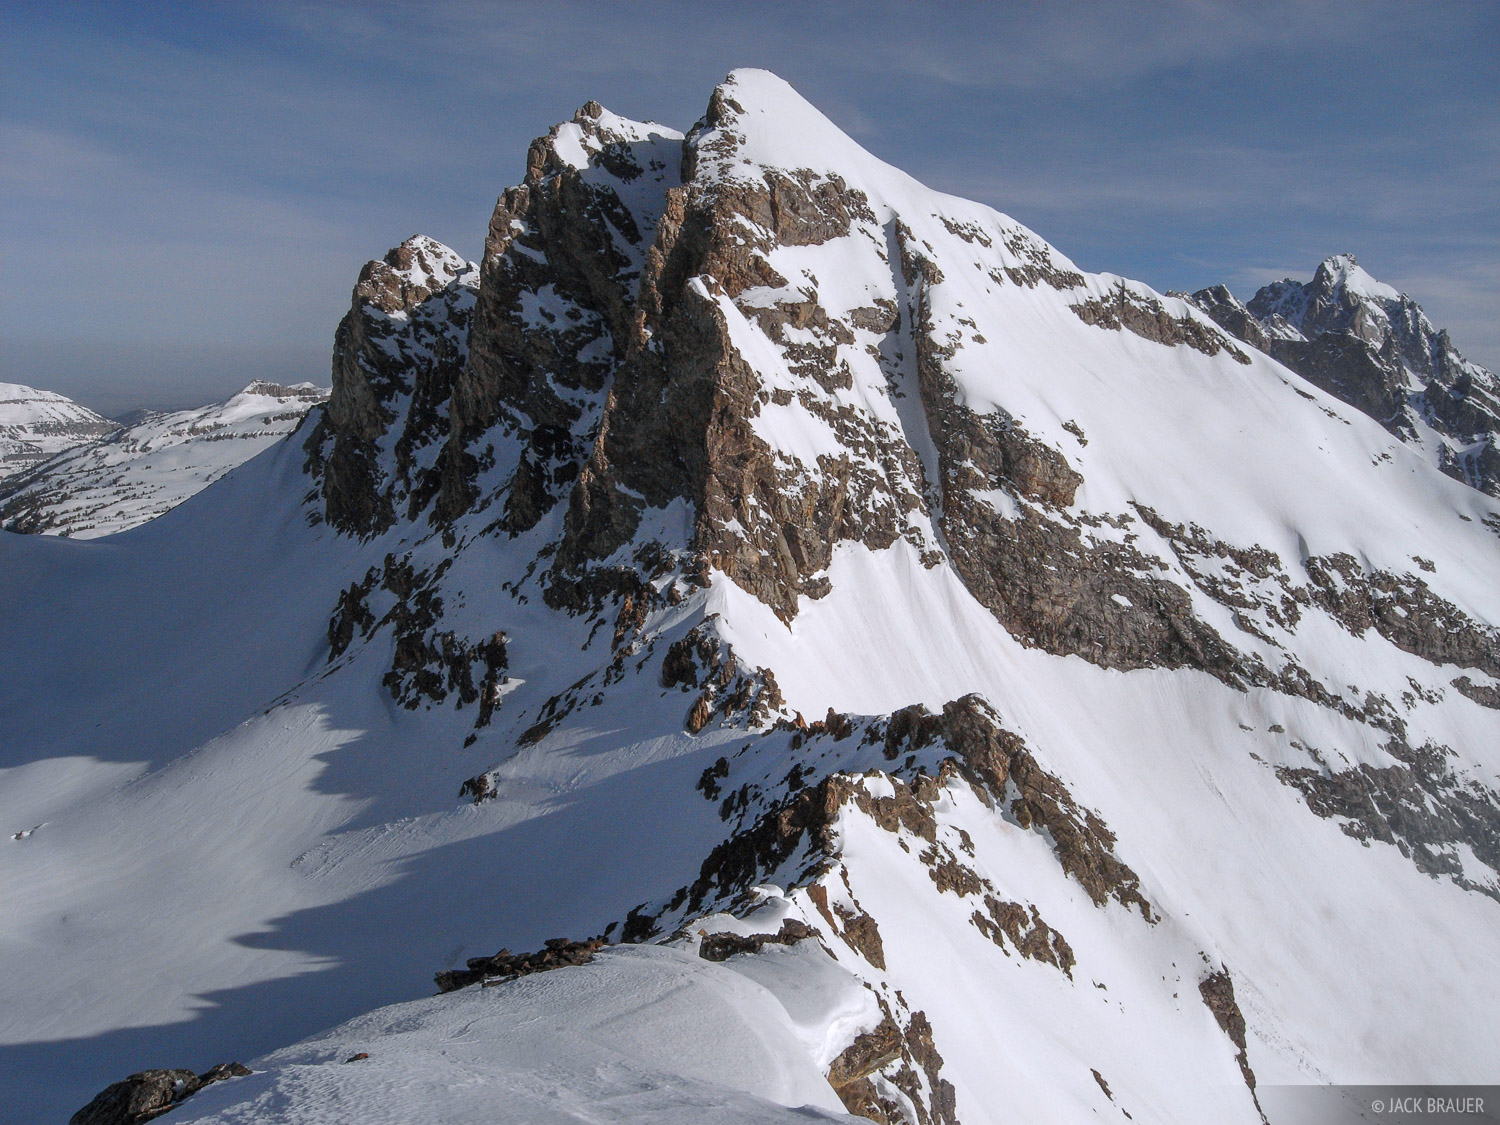 The burly Buck Mountain, 11,938 feet, as seen from the summit of Static Peak - May.